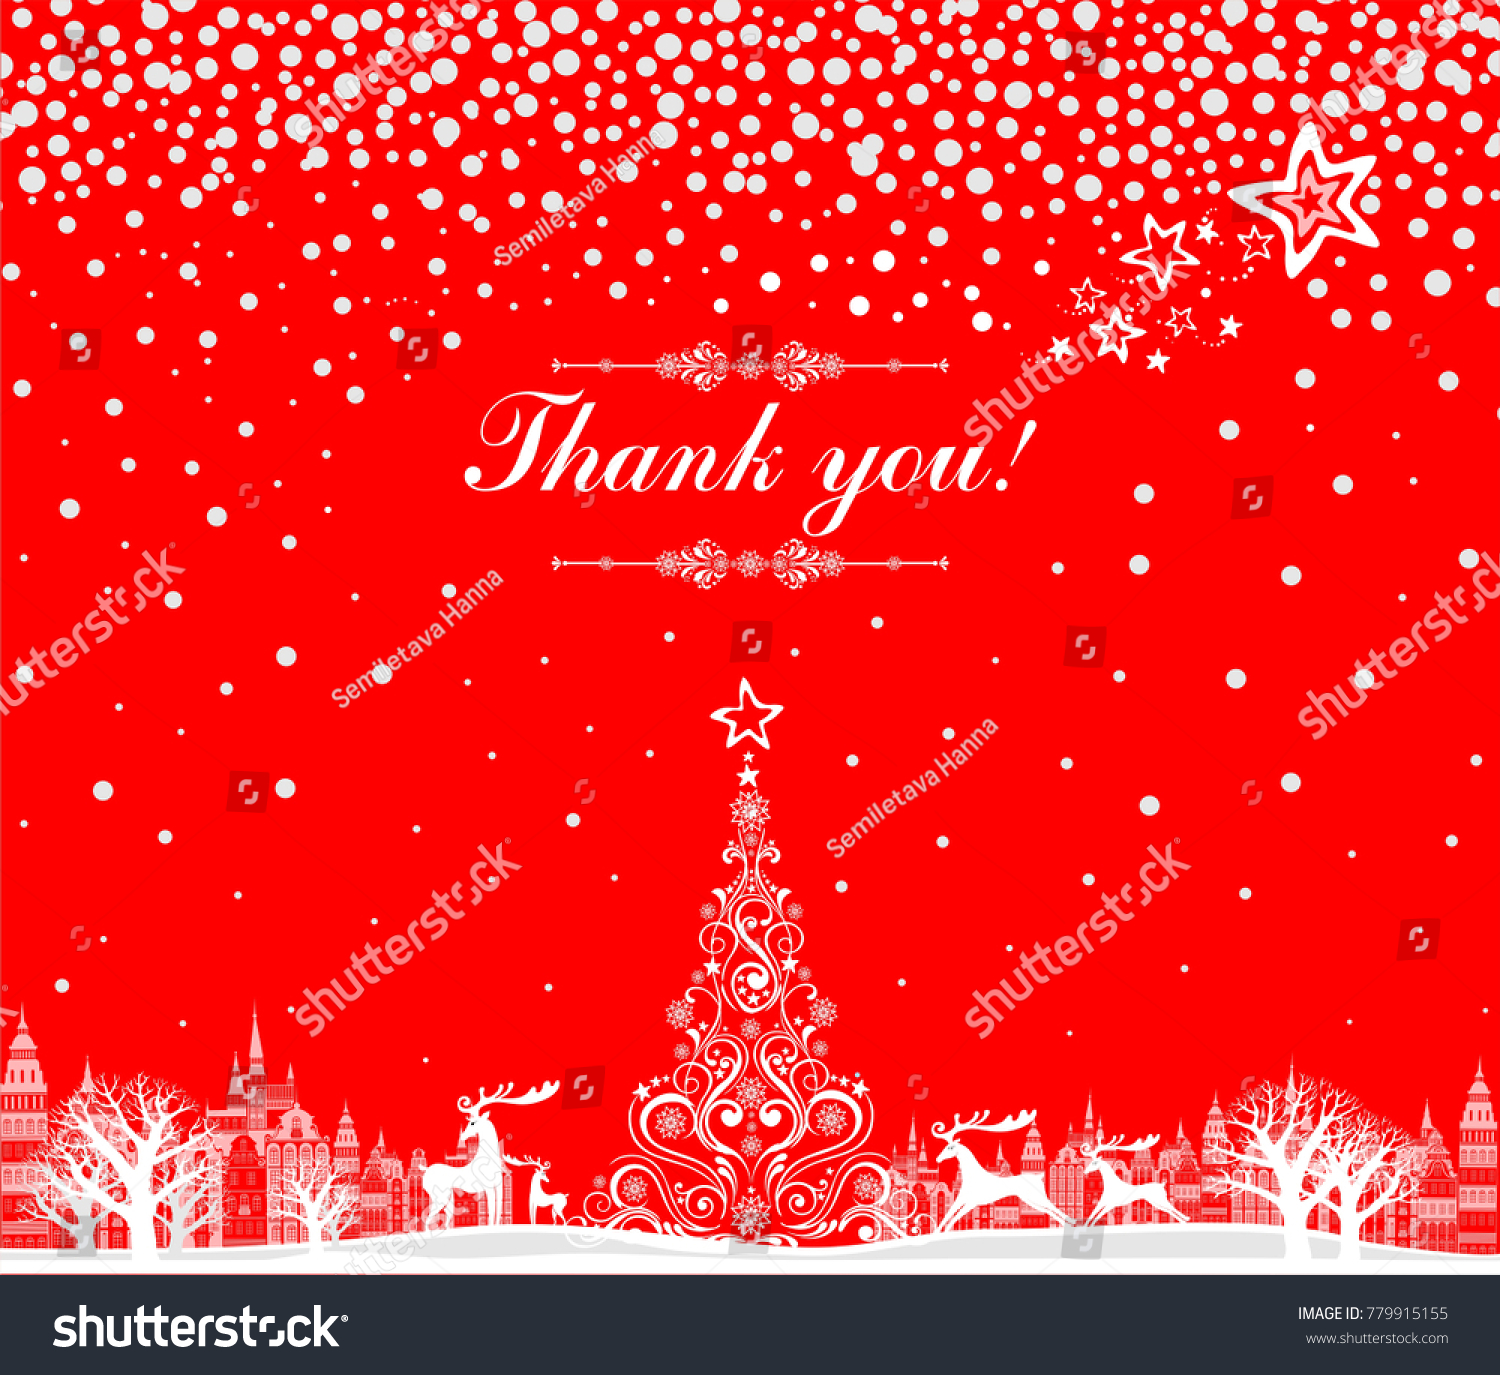 Thank You Card Celebration Red Background Stock Vector 779915155